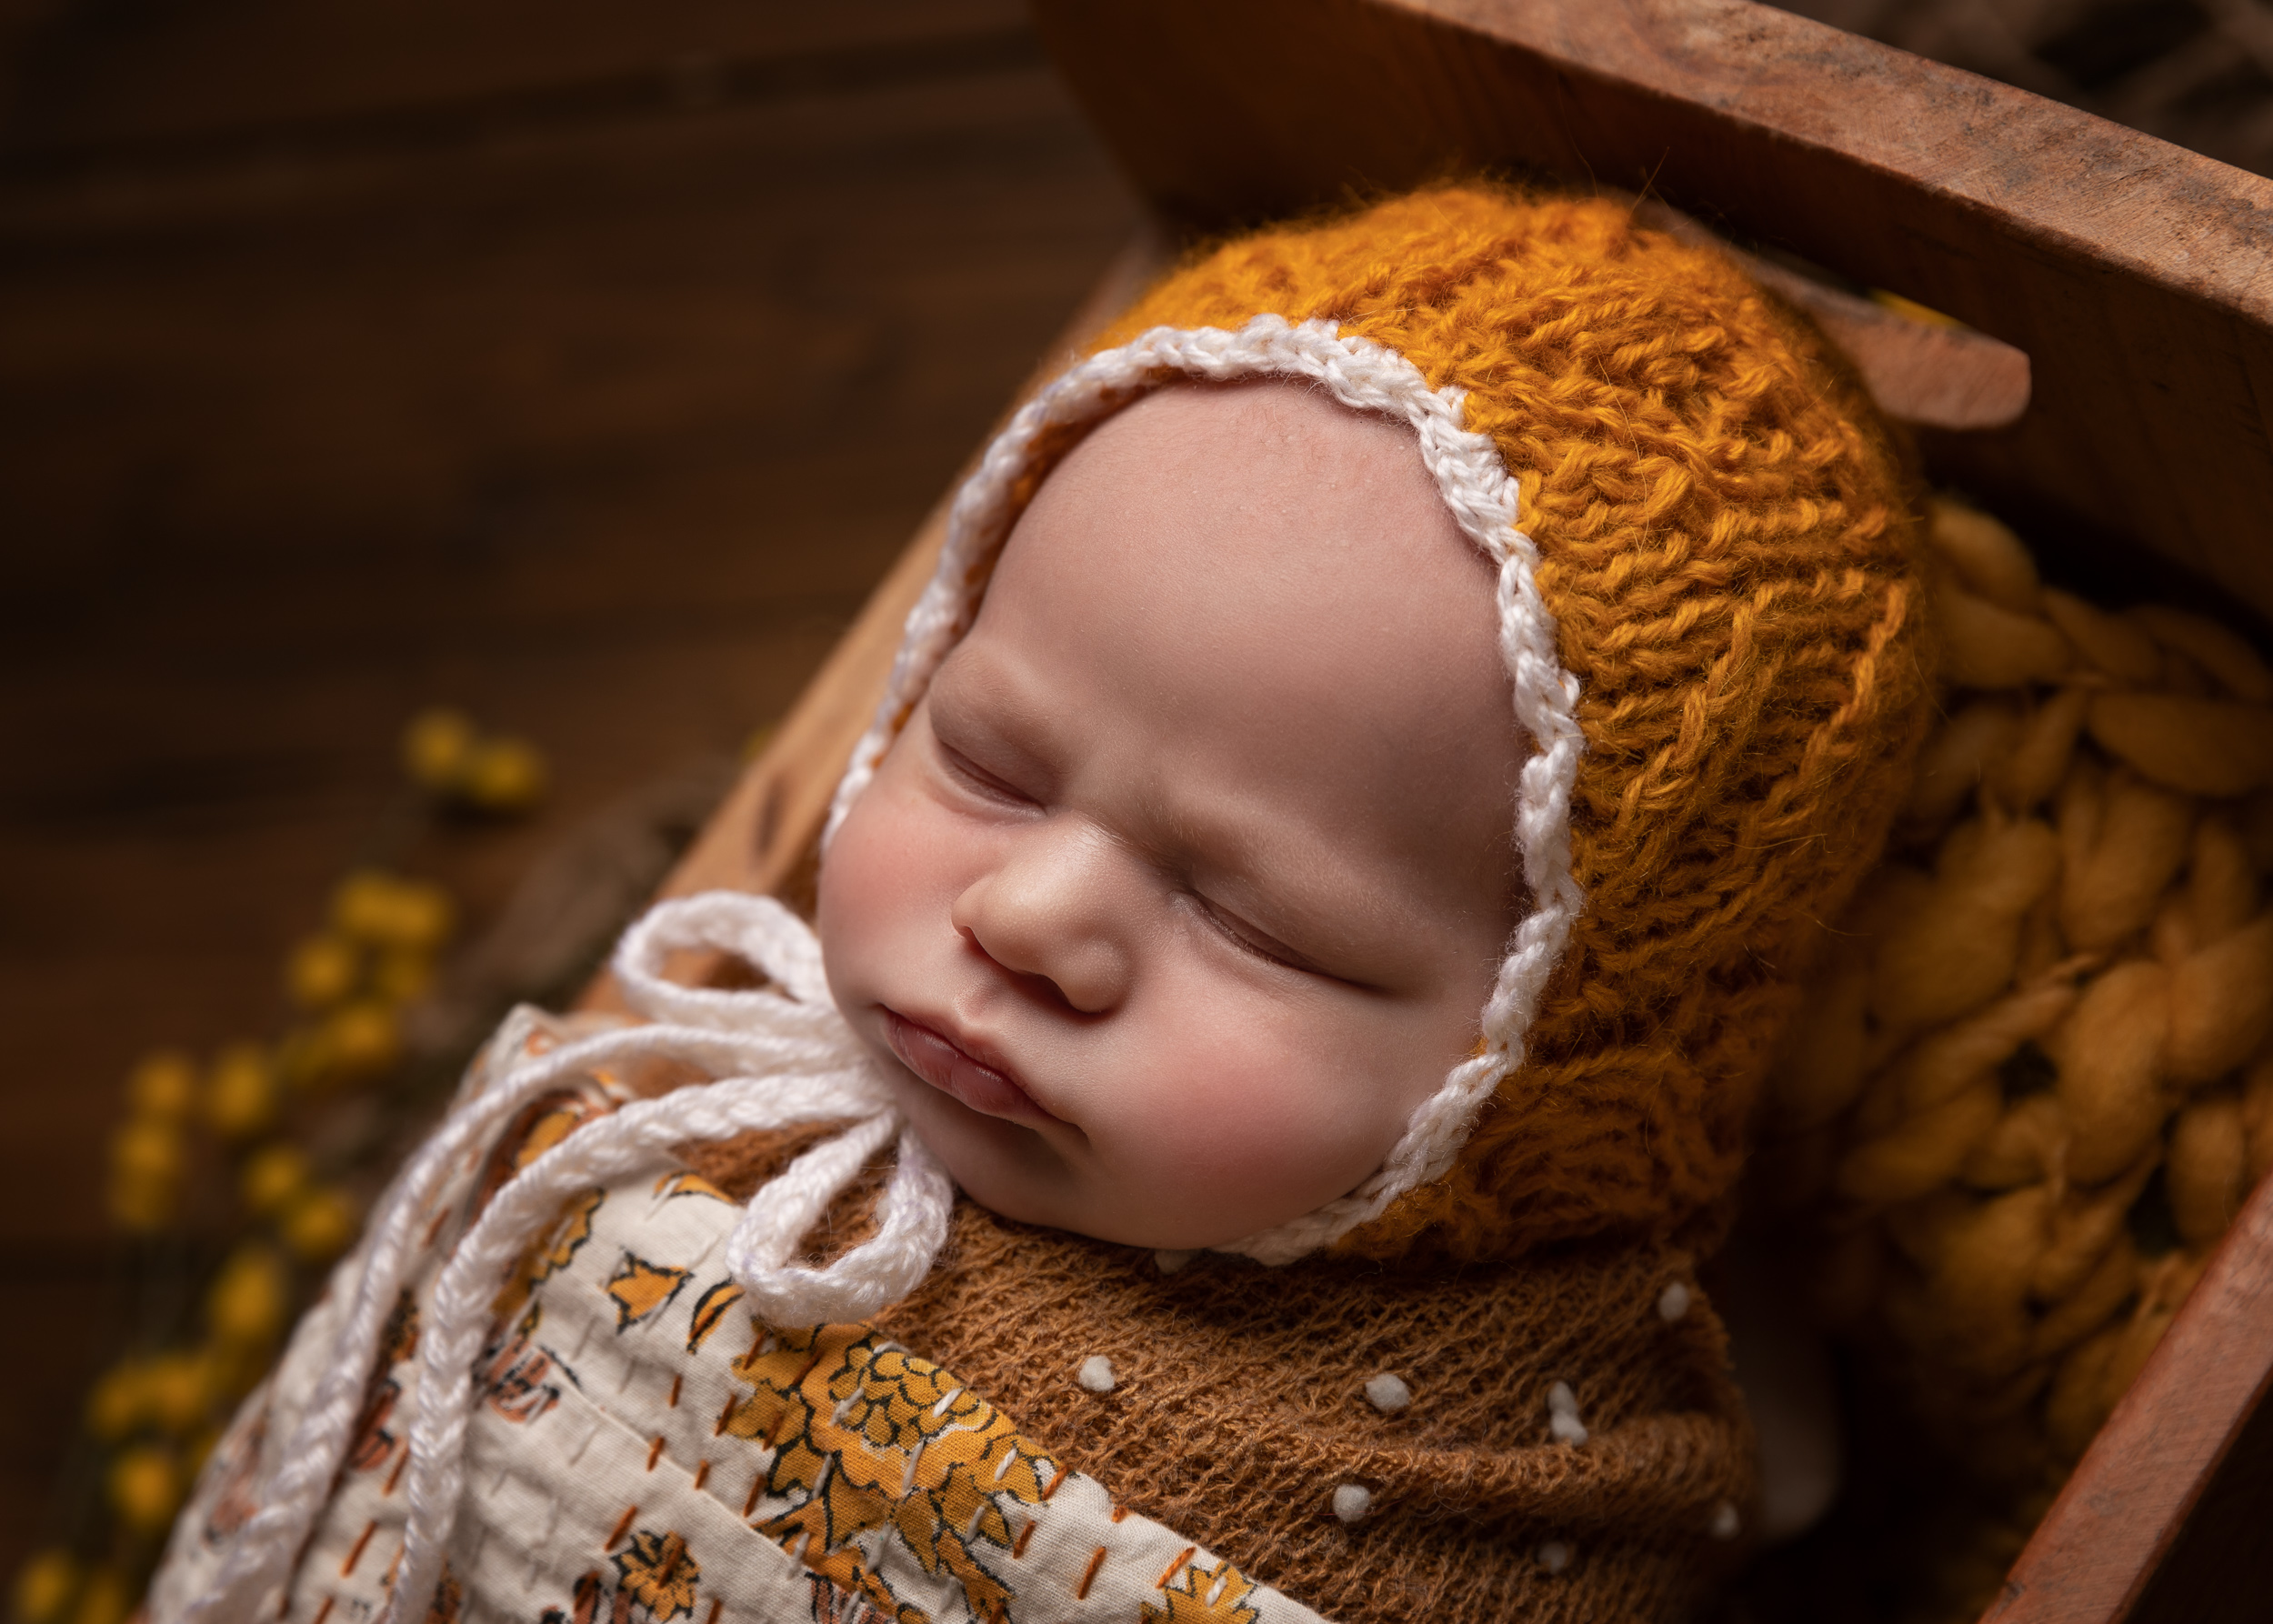 Newborn baby with mustard and white decoration by Cheshire newborn photographer in Sandbach